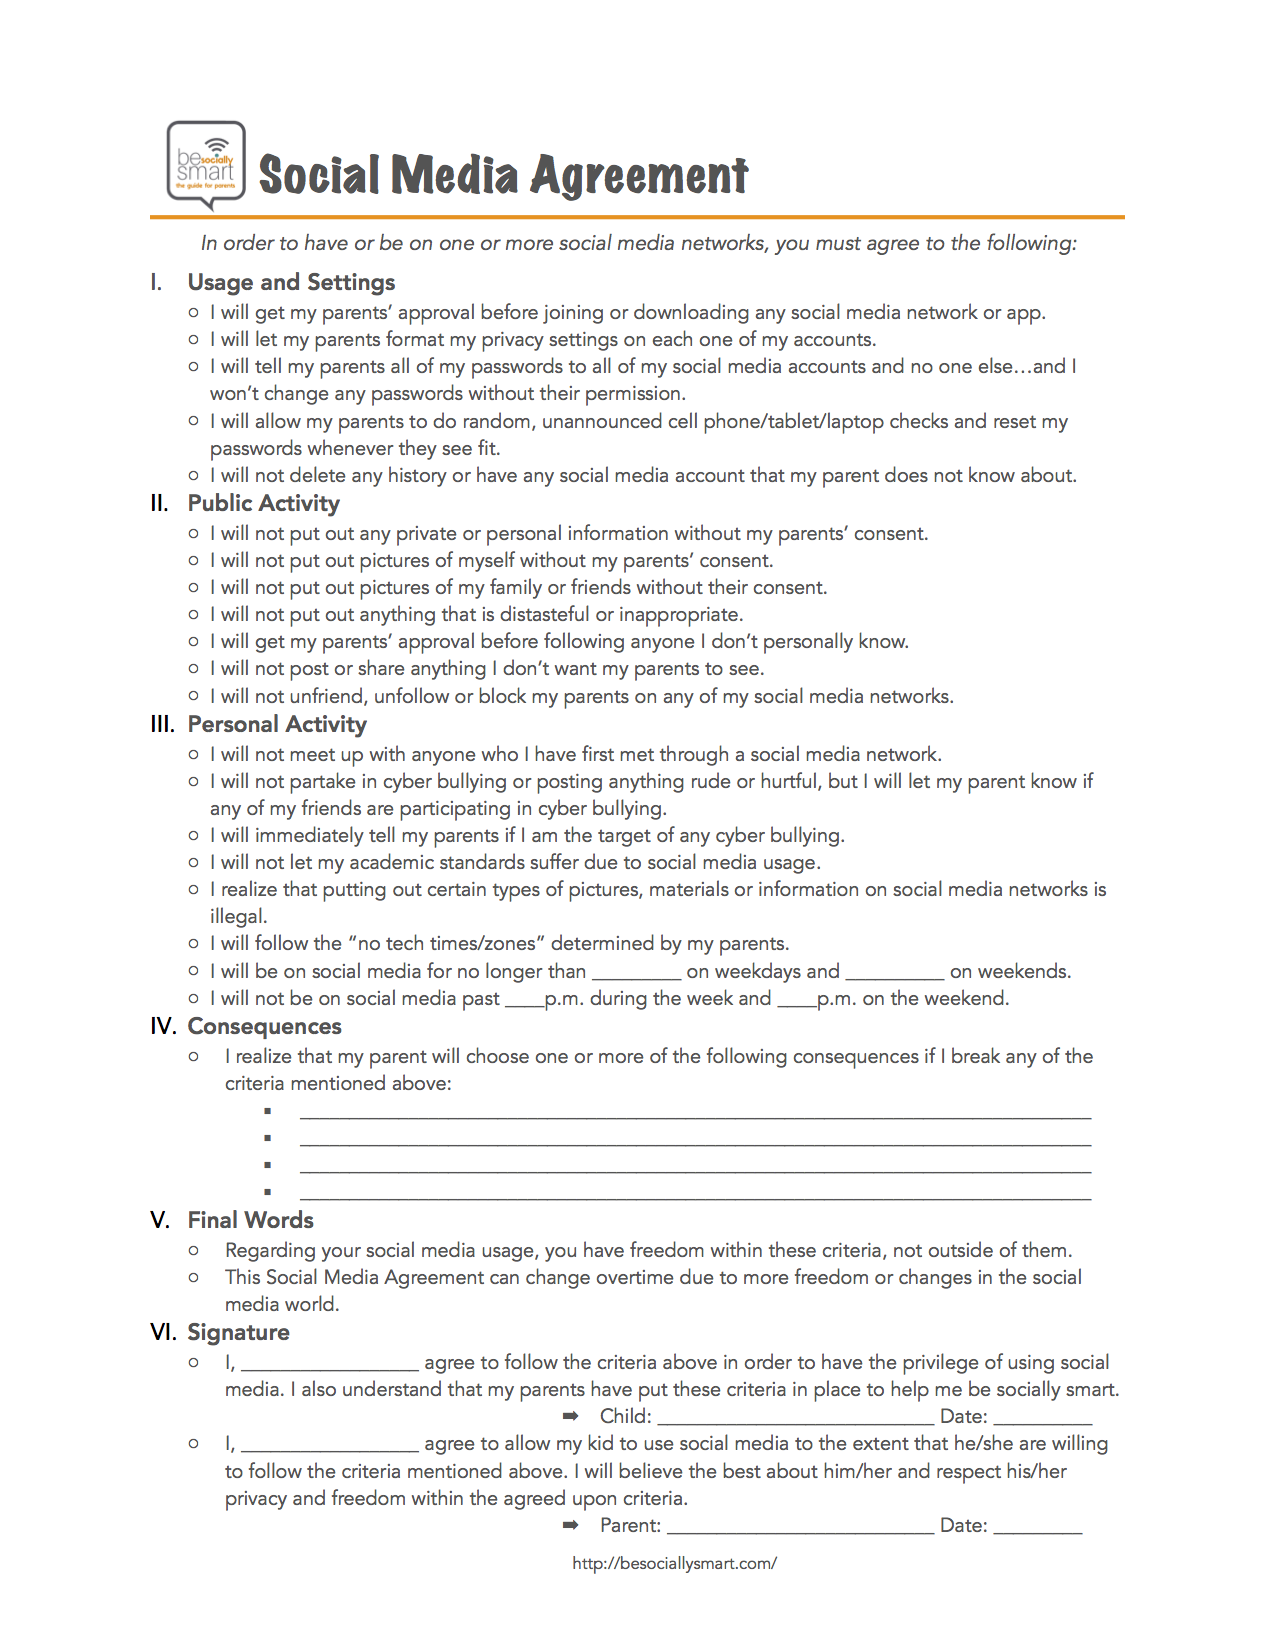 Social Media Parent Child Contract Agreement